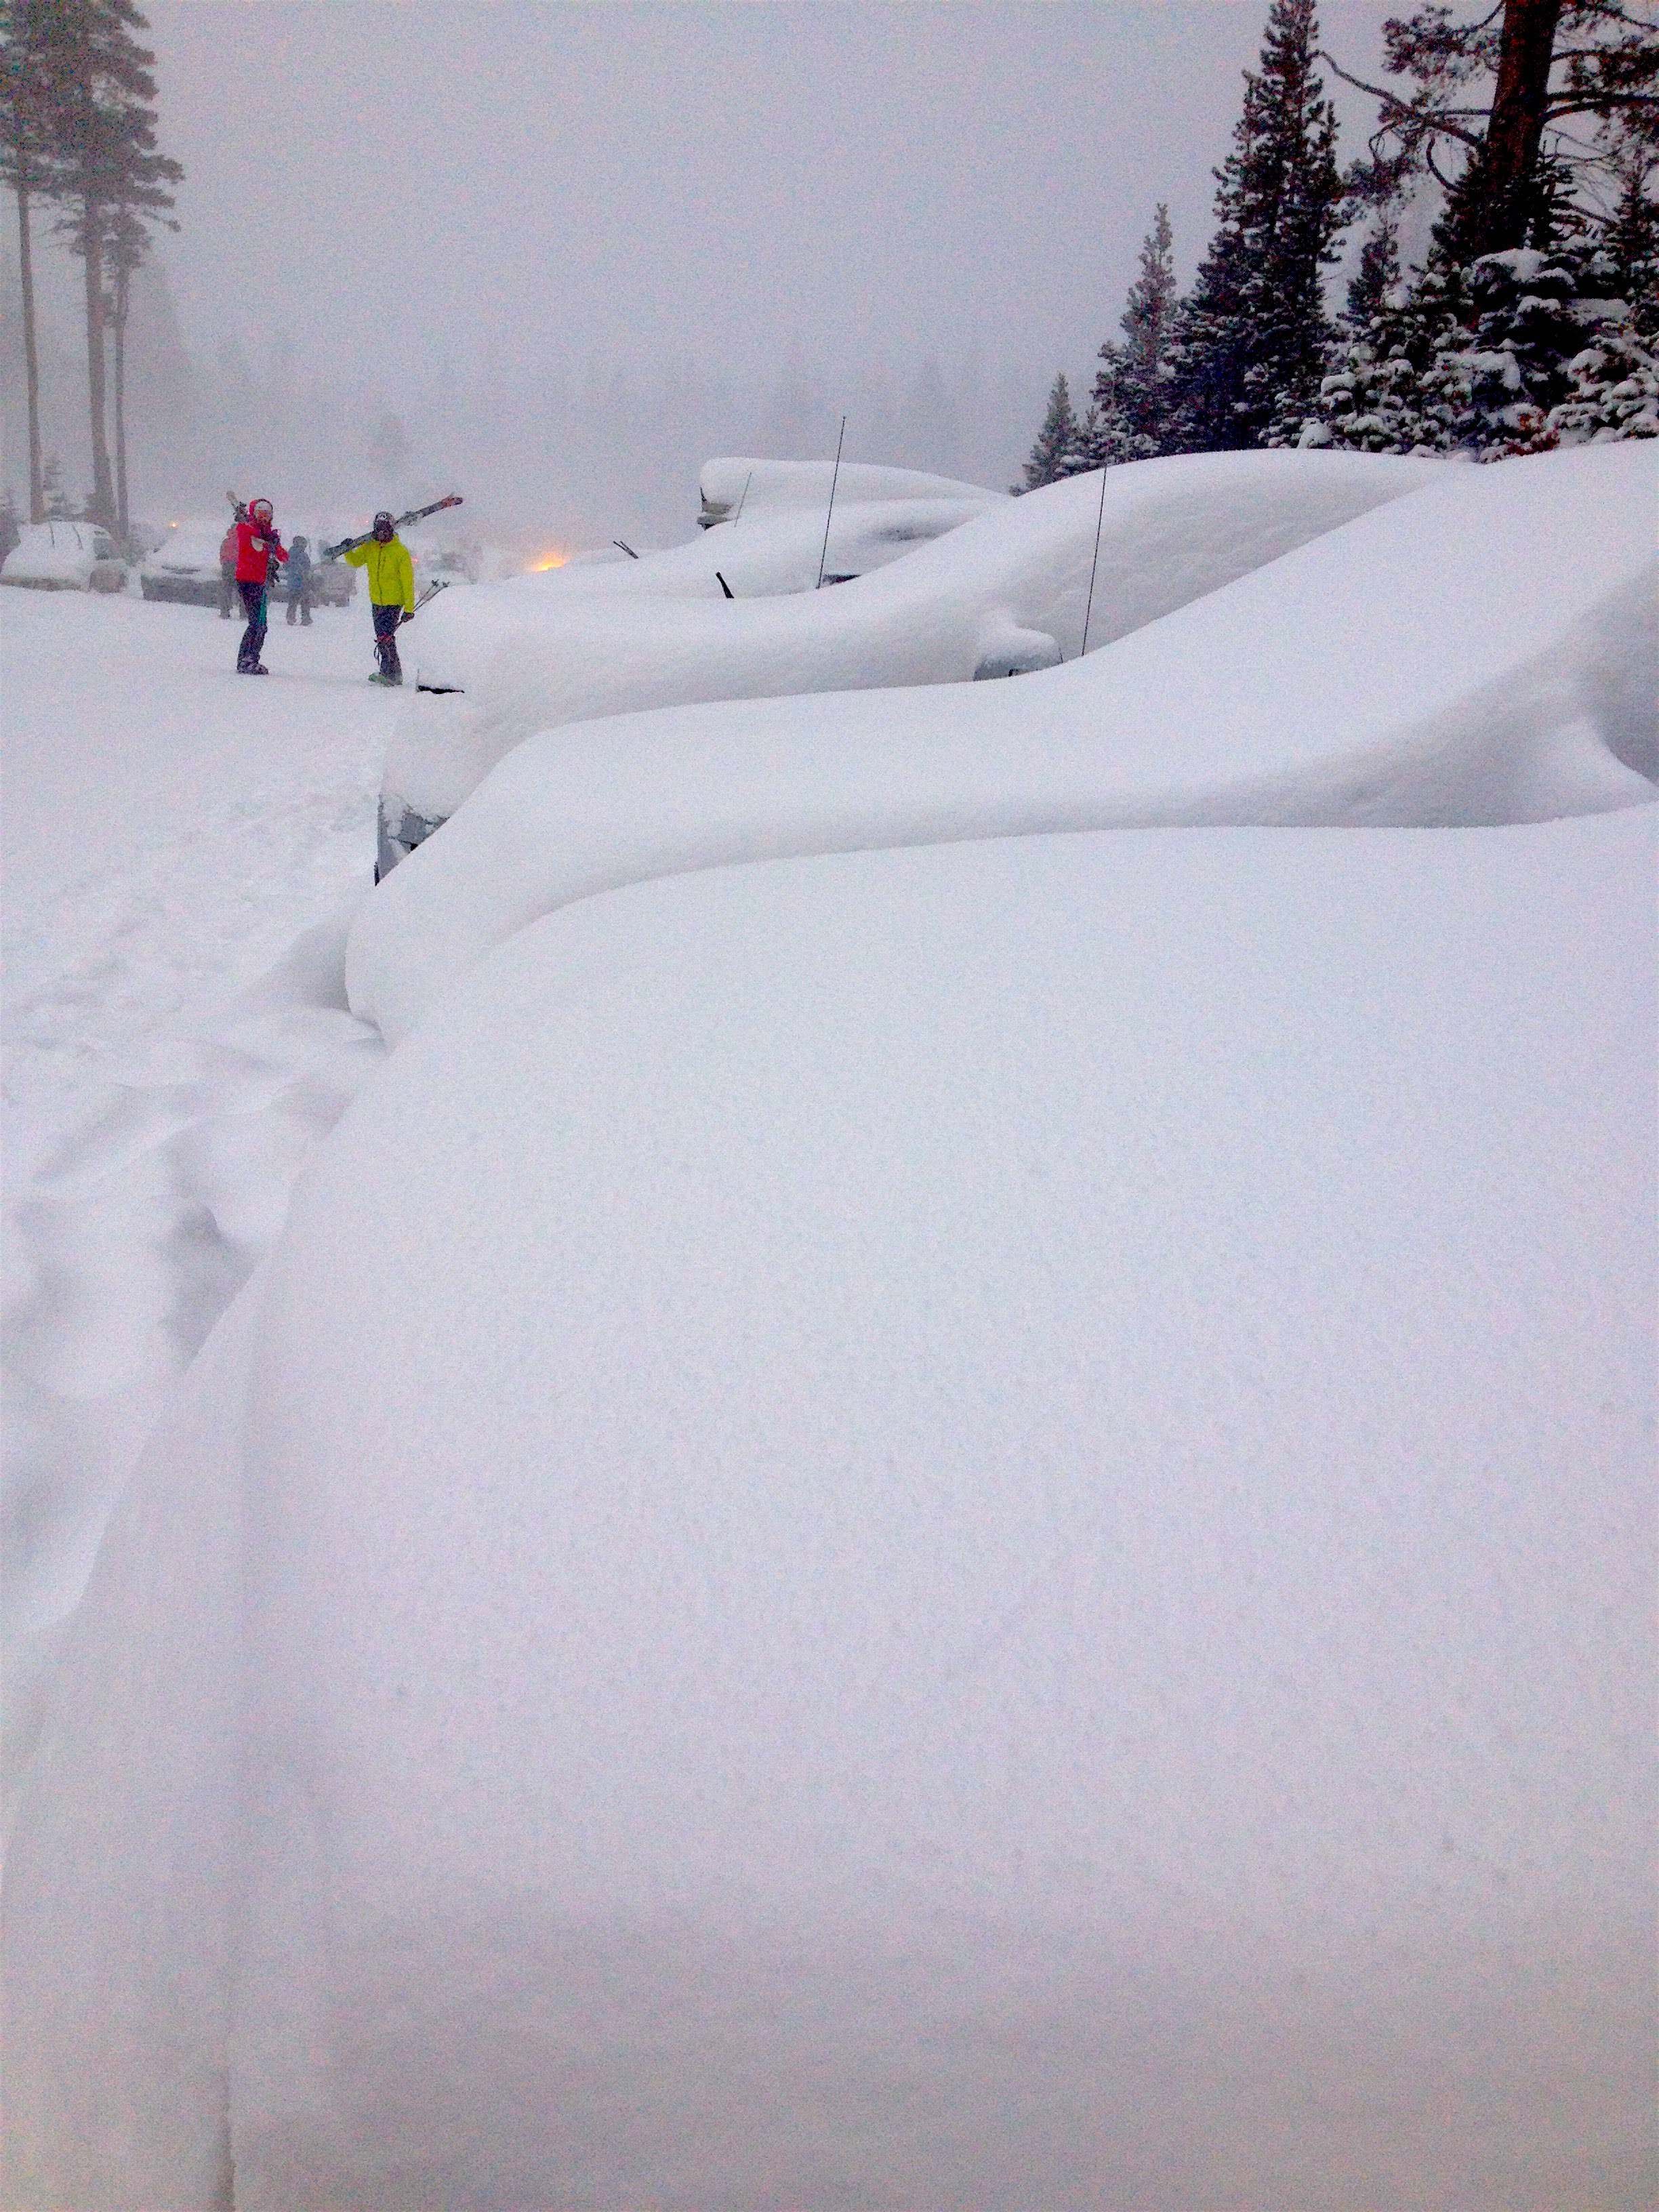 Parking lot cars looking a bit buried at 4pm today. photo: snowbrains